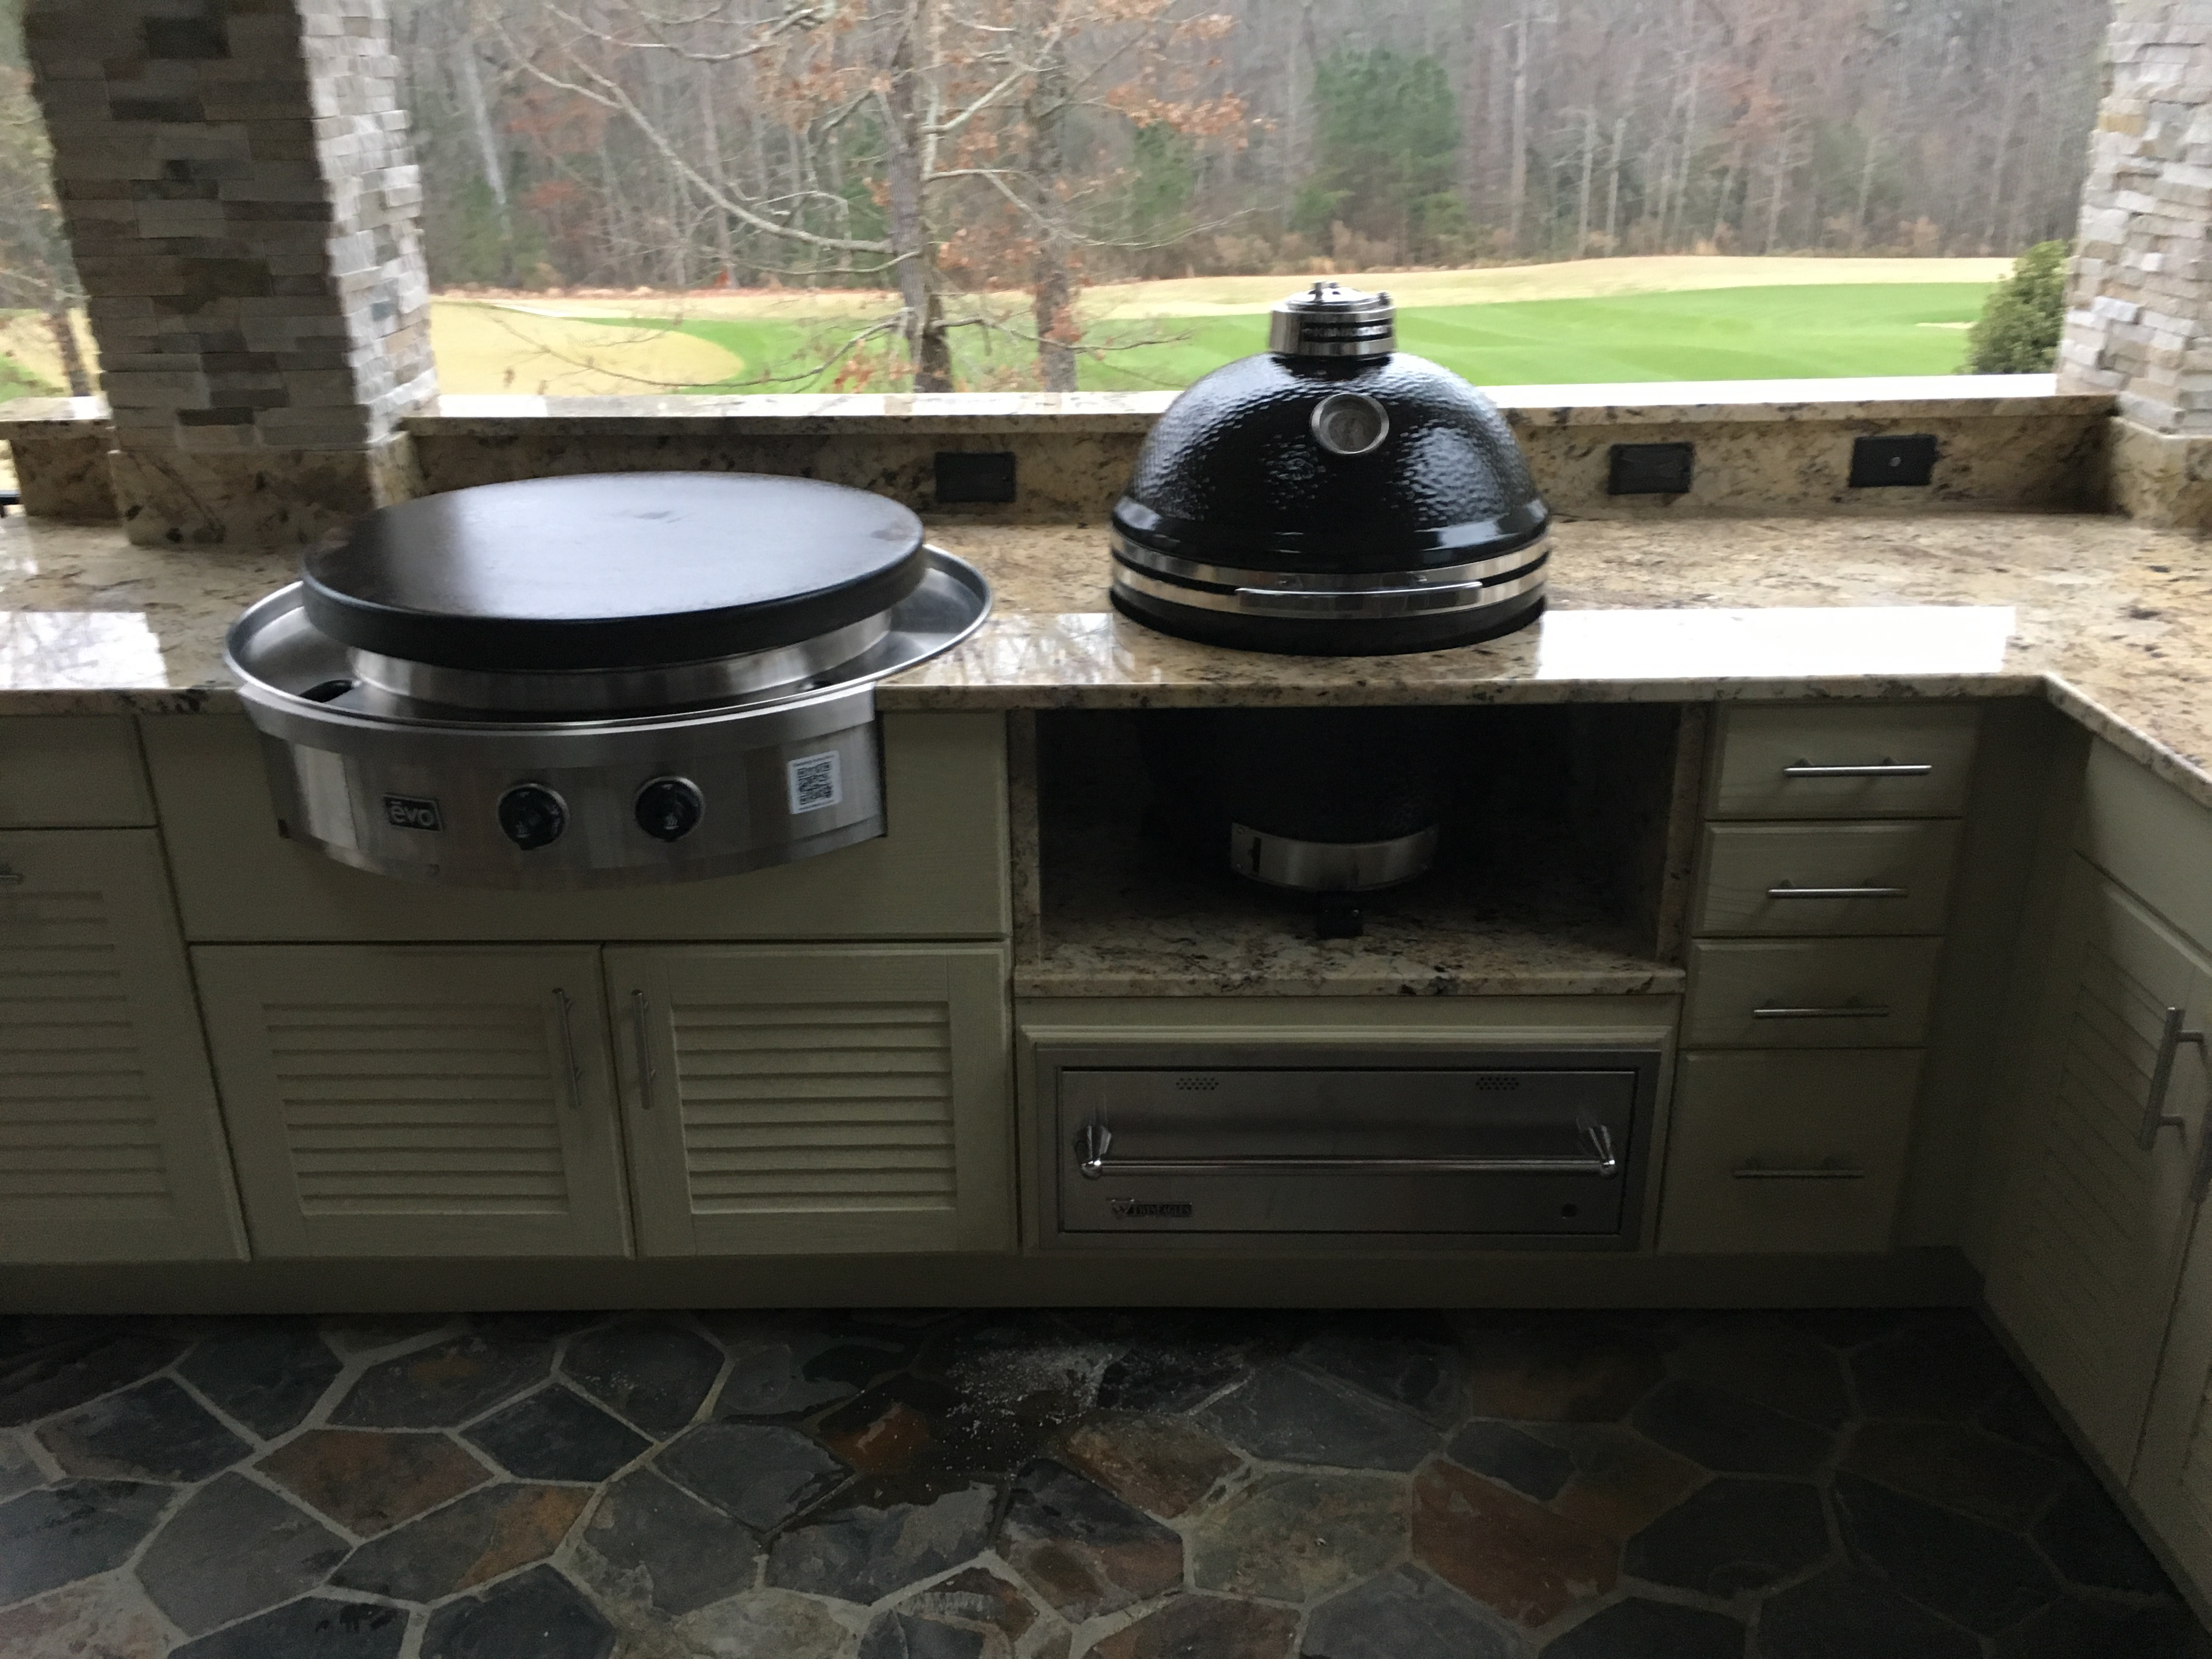 EVO in Naturekast with Kamado Joe front